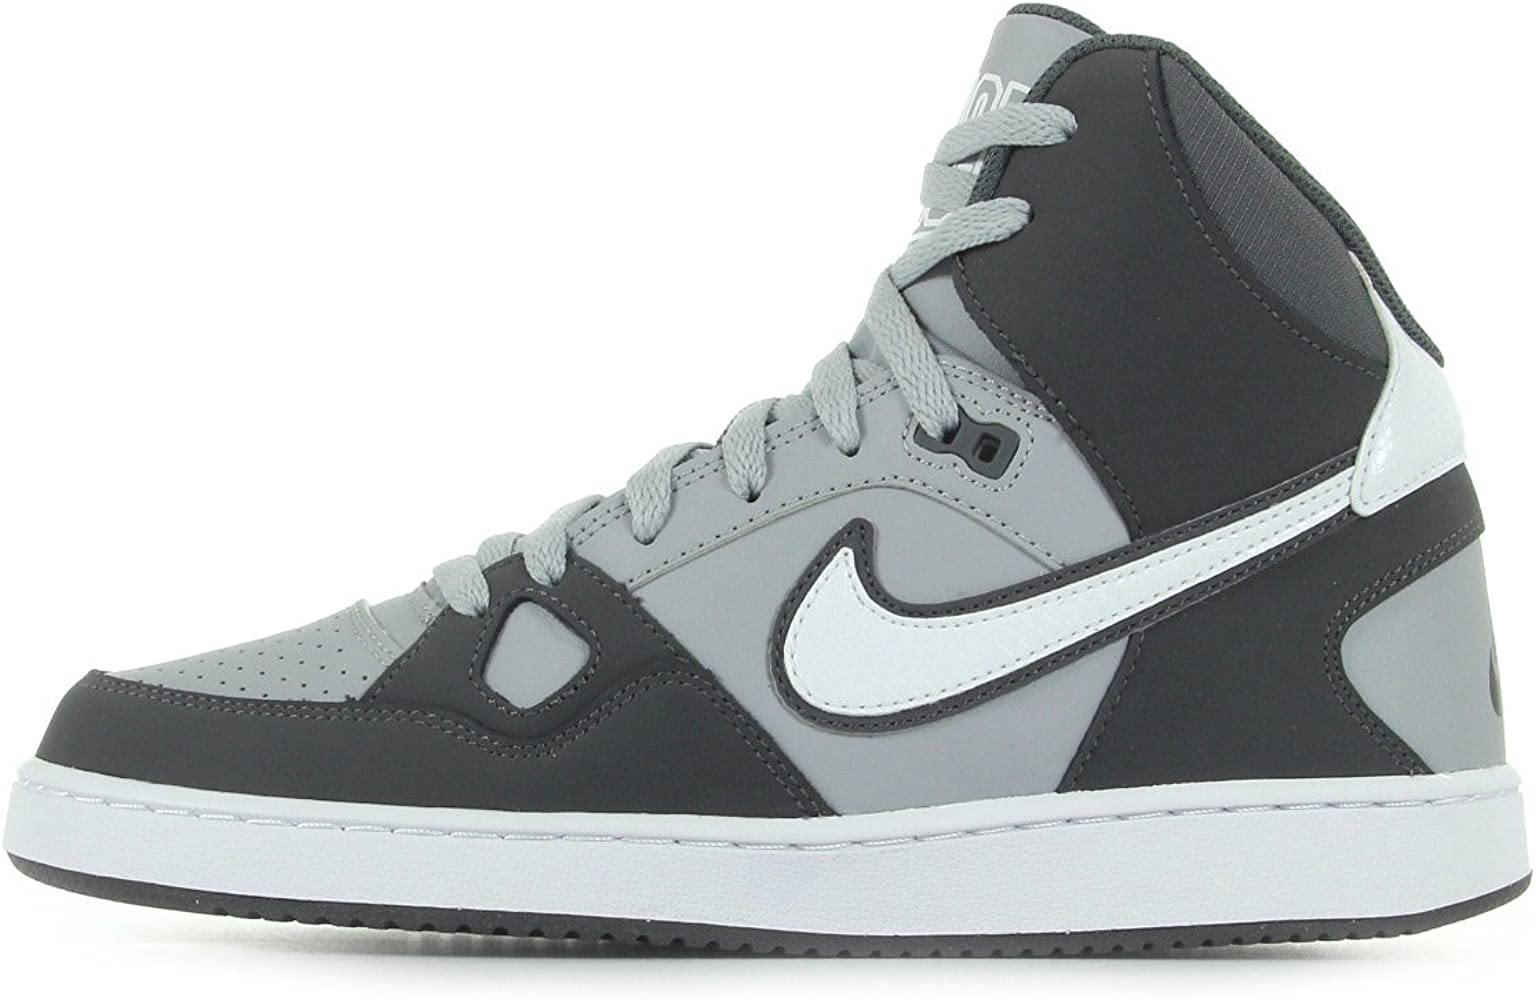 Nike Son of Force Mid 616281017, Baskets Mode Homme EU 46